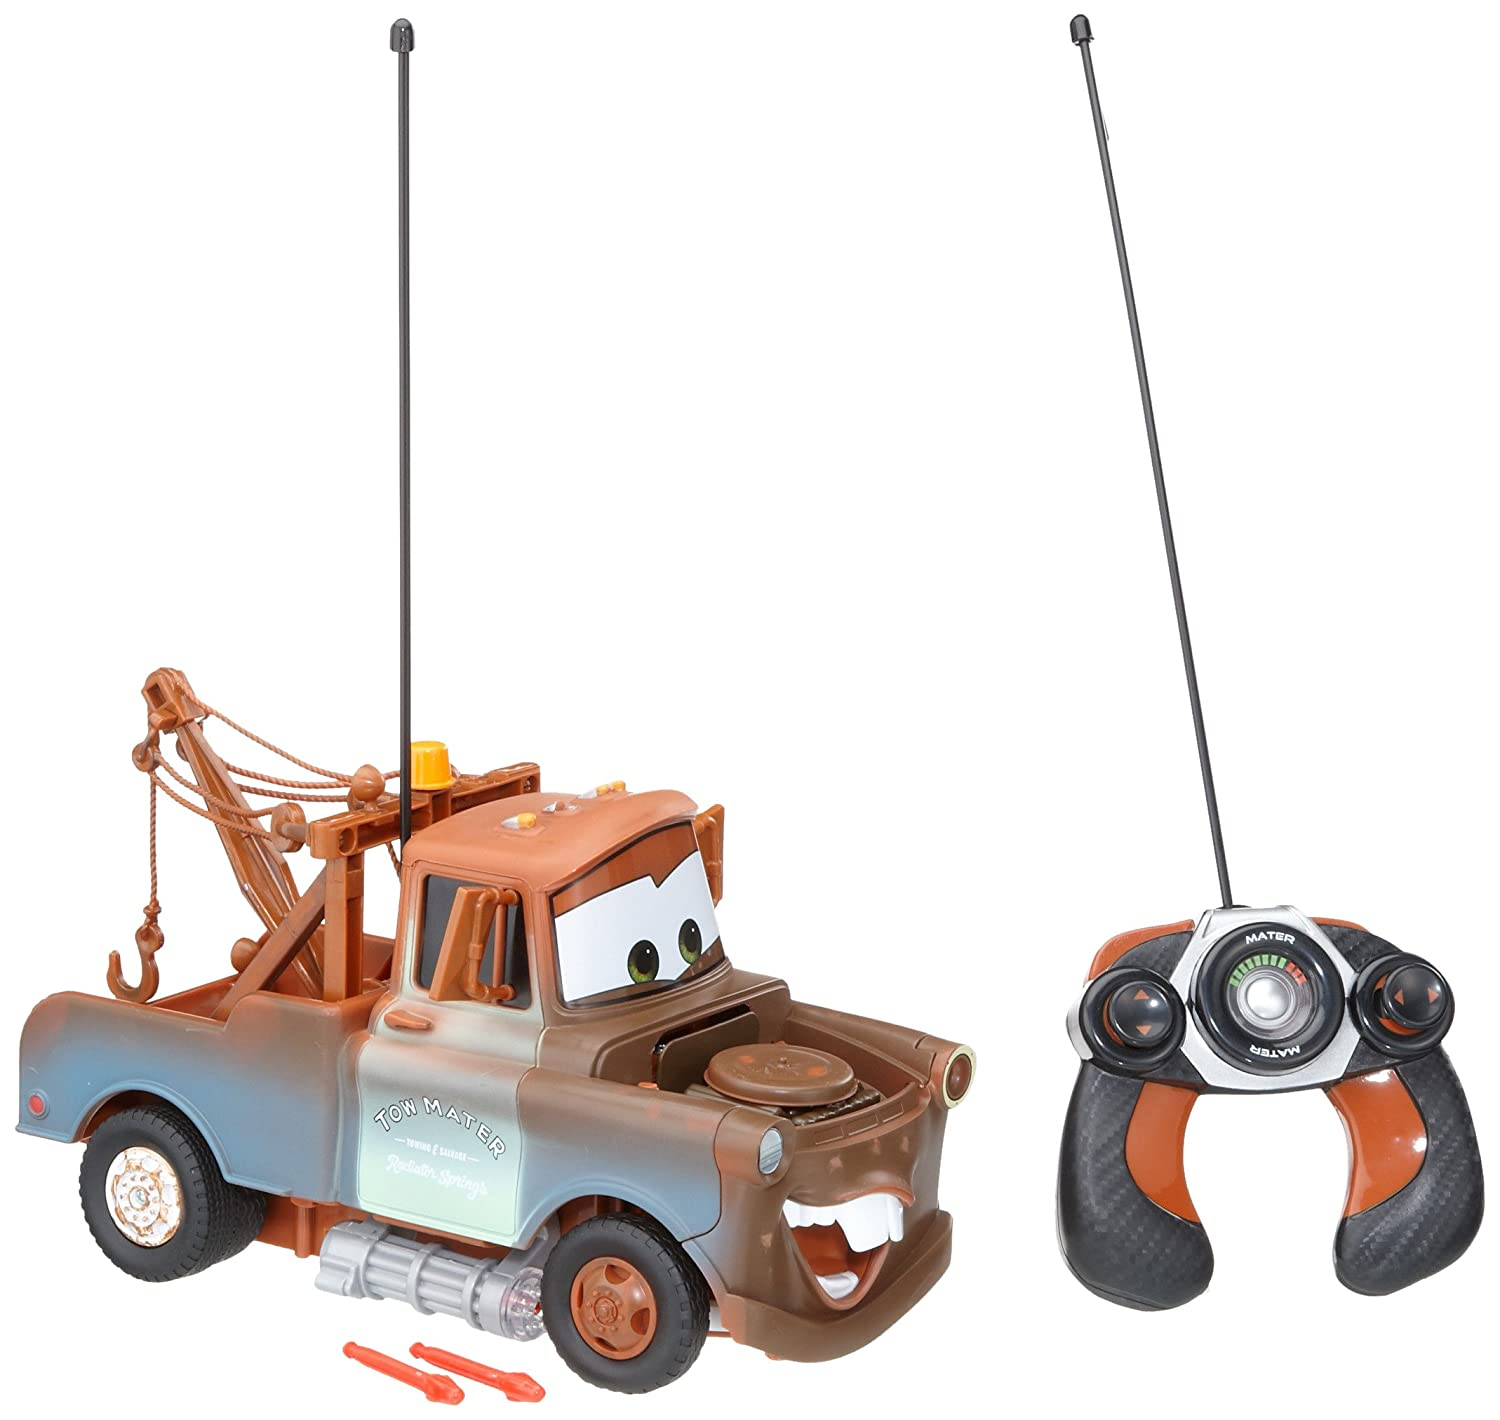 Dickie-Spielzeug 203089507 - Disney Cars 2 - RC Mater, 3-Kanal ...